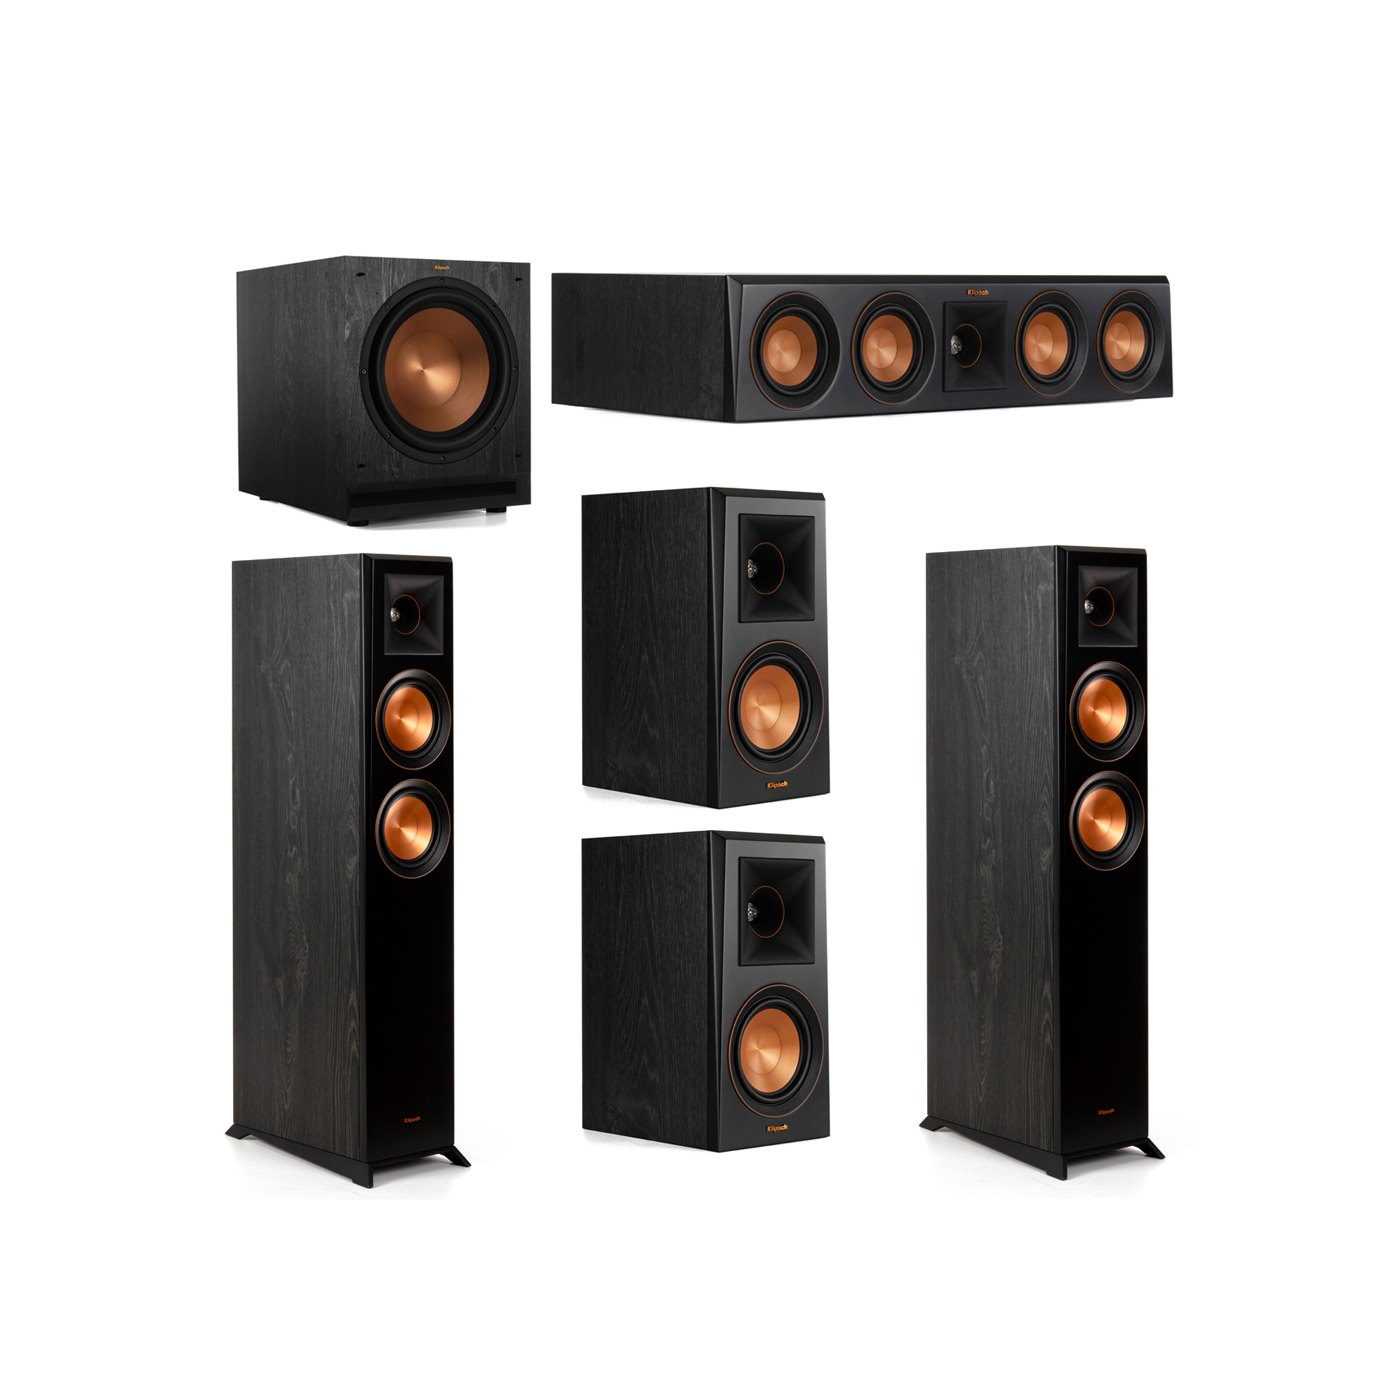 Klipsch 5.1 System with 2 RP-5000F Floorstanding Speakers, 1 Klipsch RP-404C Center Speaker, 2 Klipsch RP-500M Surround Speakers, 1 Klipsch SPL-120 Subwoofer